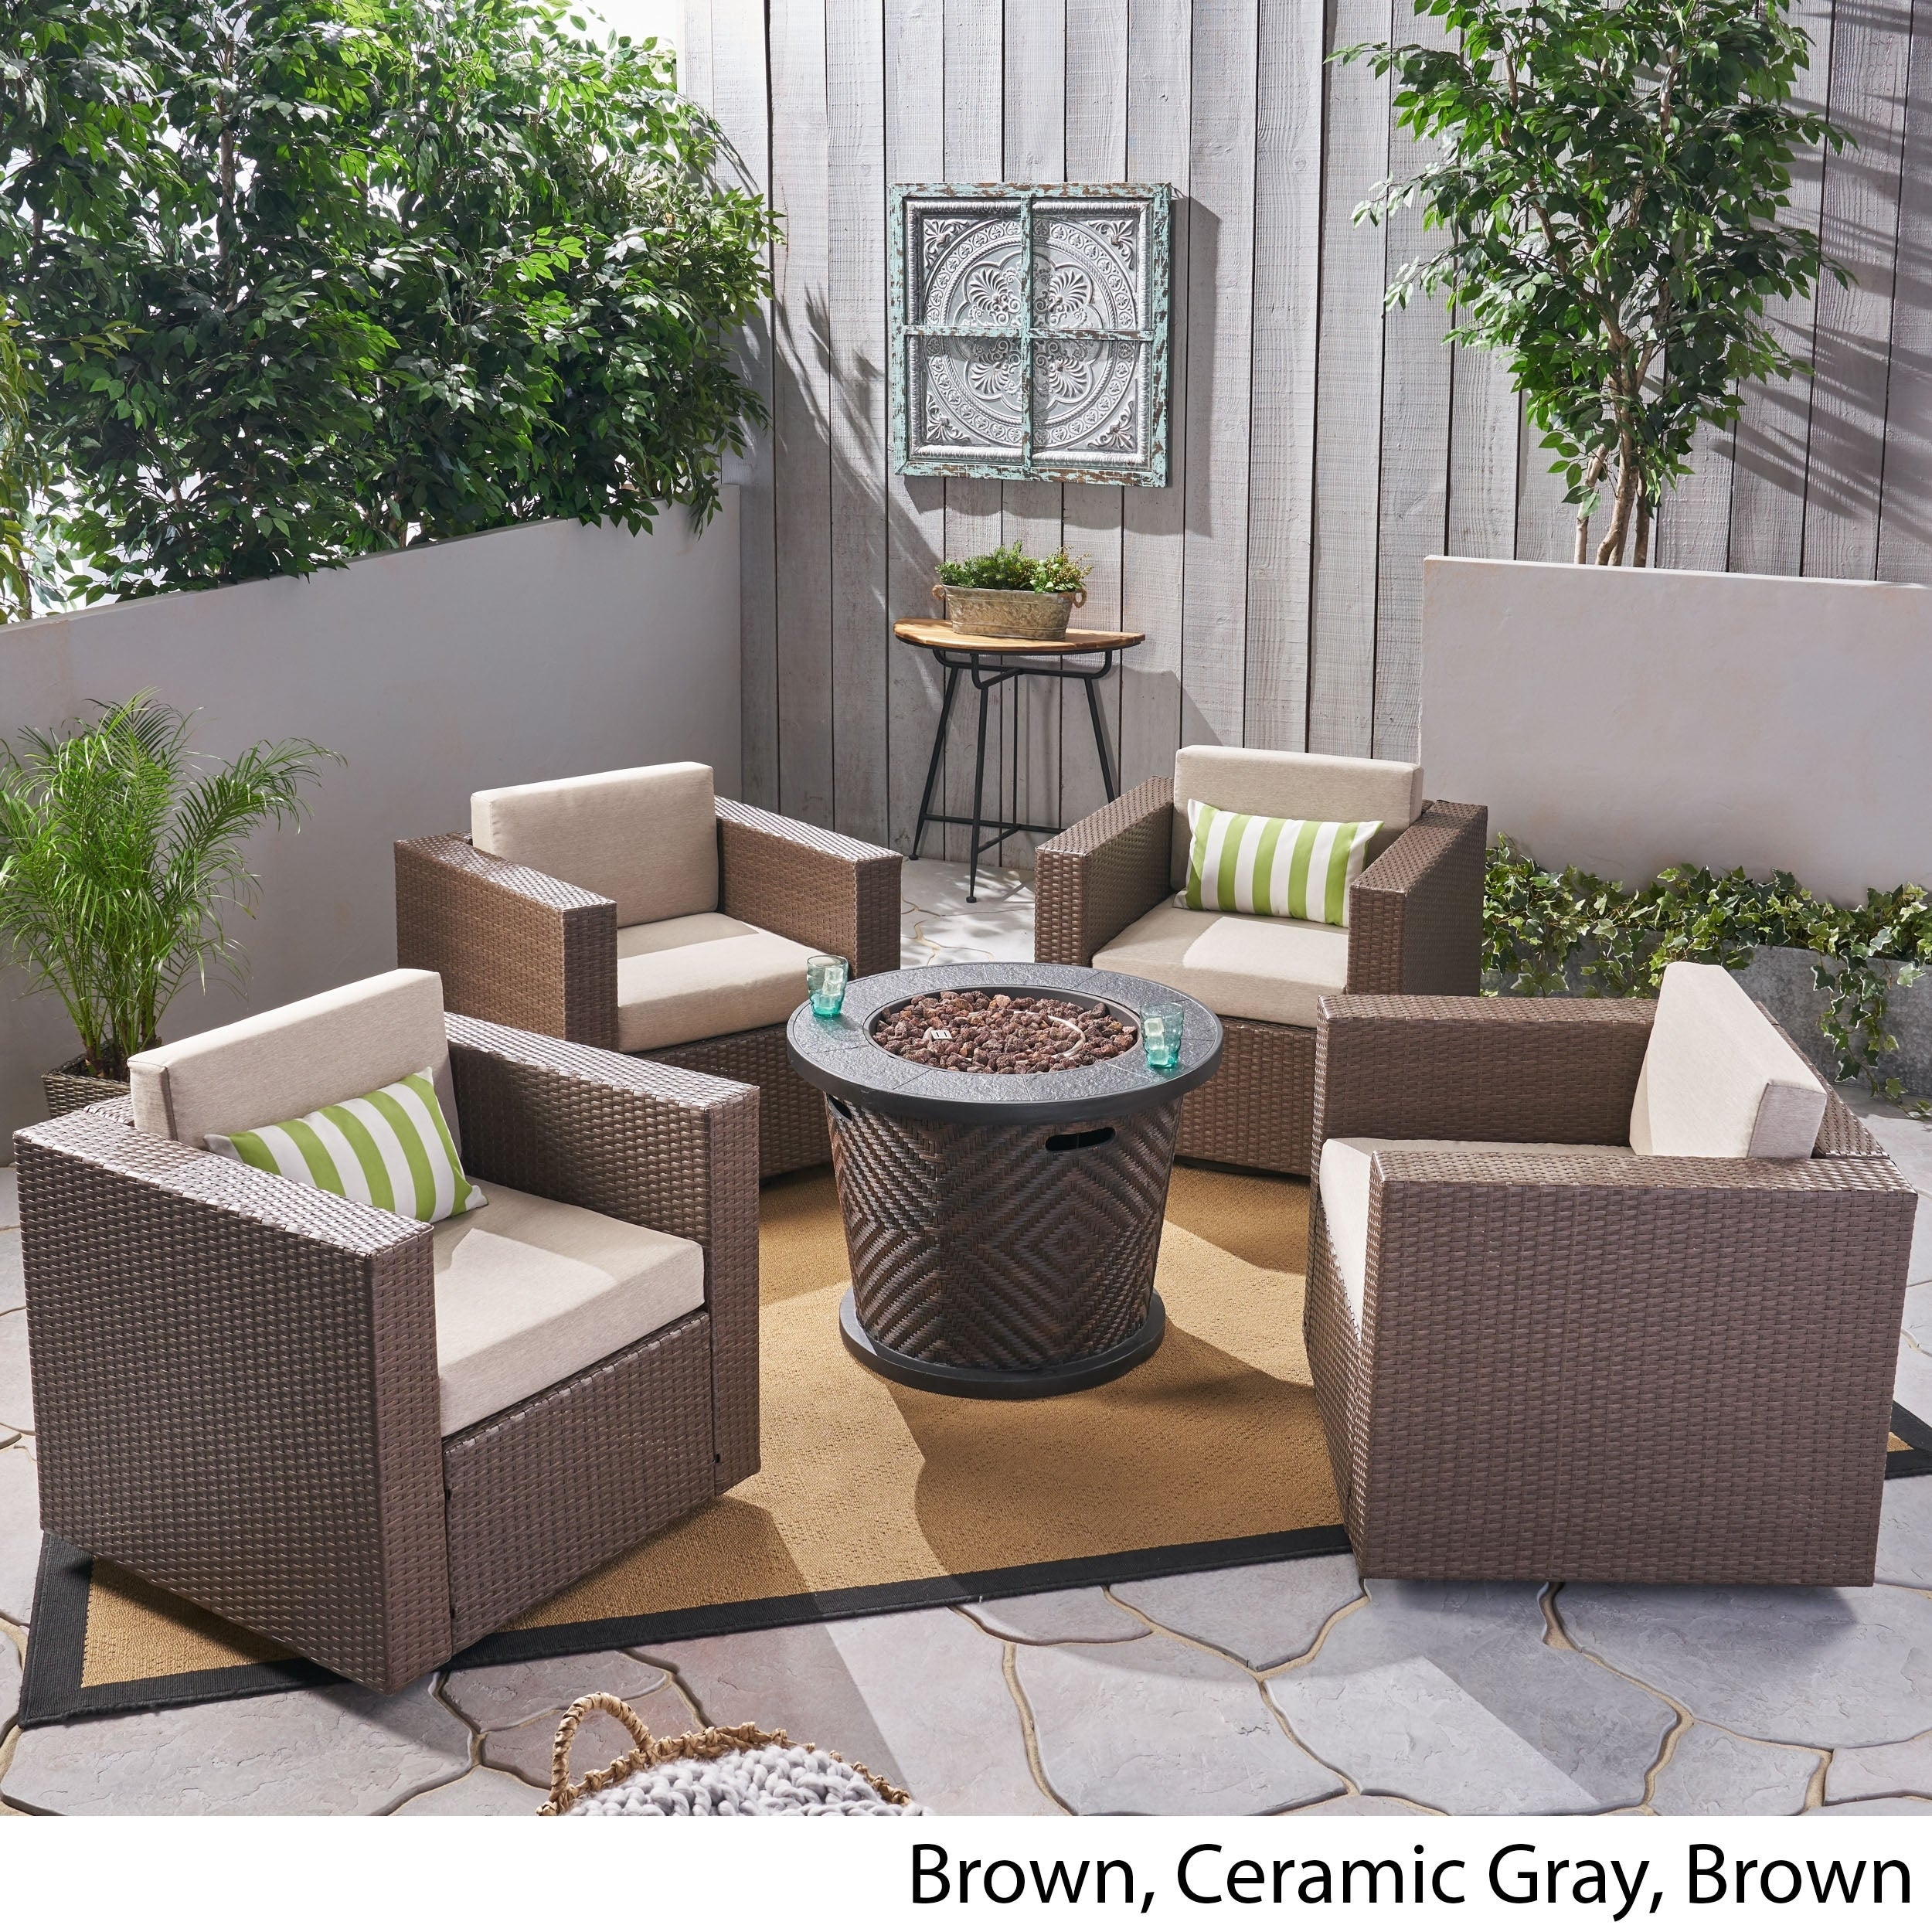 Wondrous Pollock Outdoor 4 Piece Wicker Swivel Chair Set With Fire Pit By Christopher Knight Home Evergreenethics Interior Chair Design Evergreenethicsorg